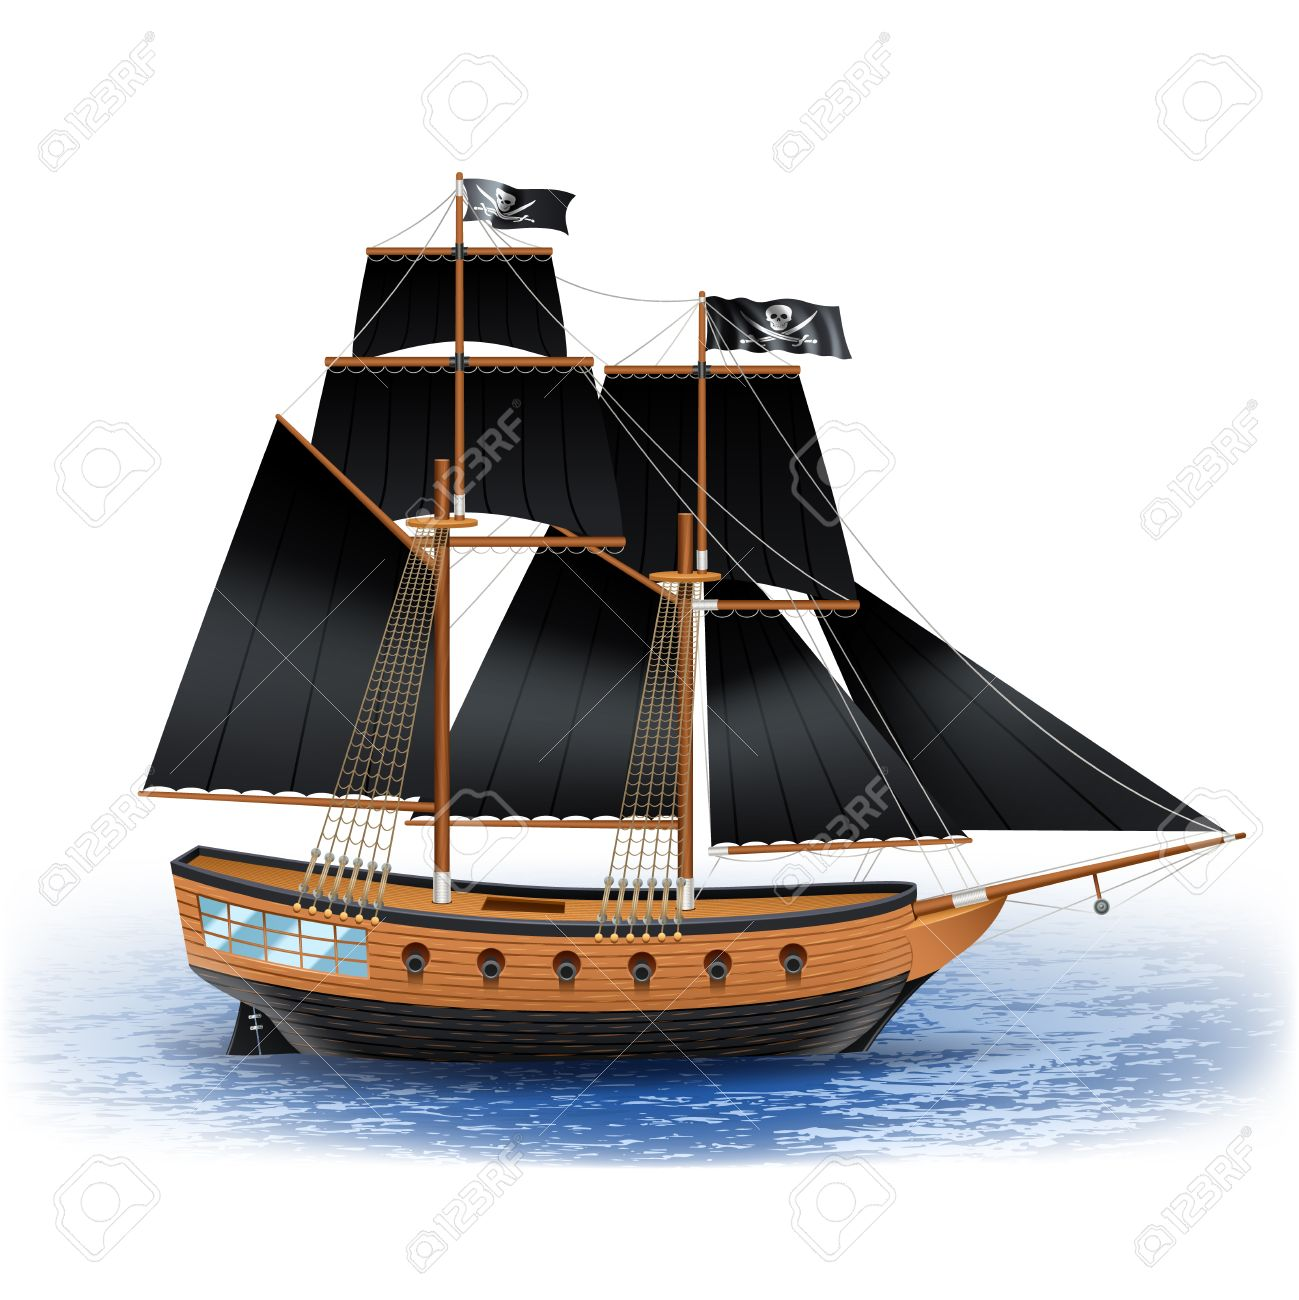 Wooden Pirate Ship With Black Sails And Jolly Roger Flag At Sea Realistic Vector Illustration Stock